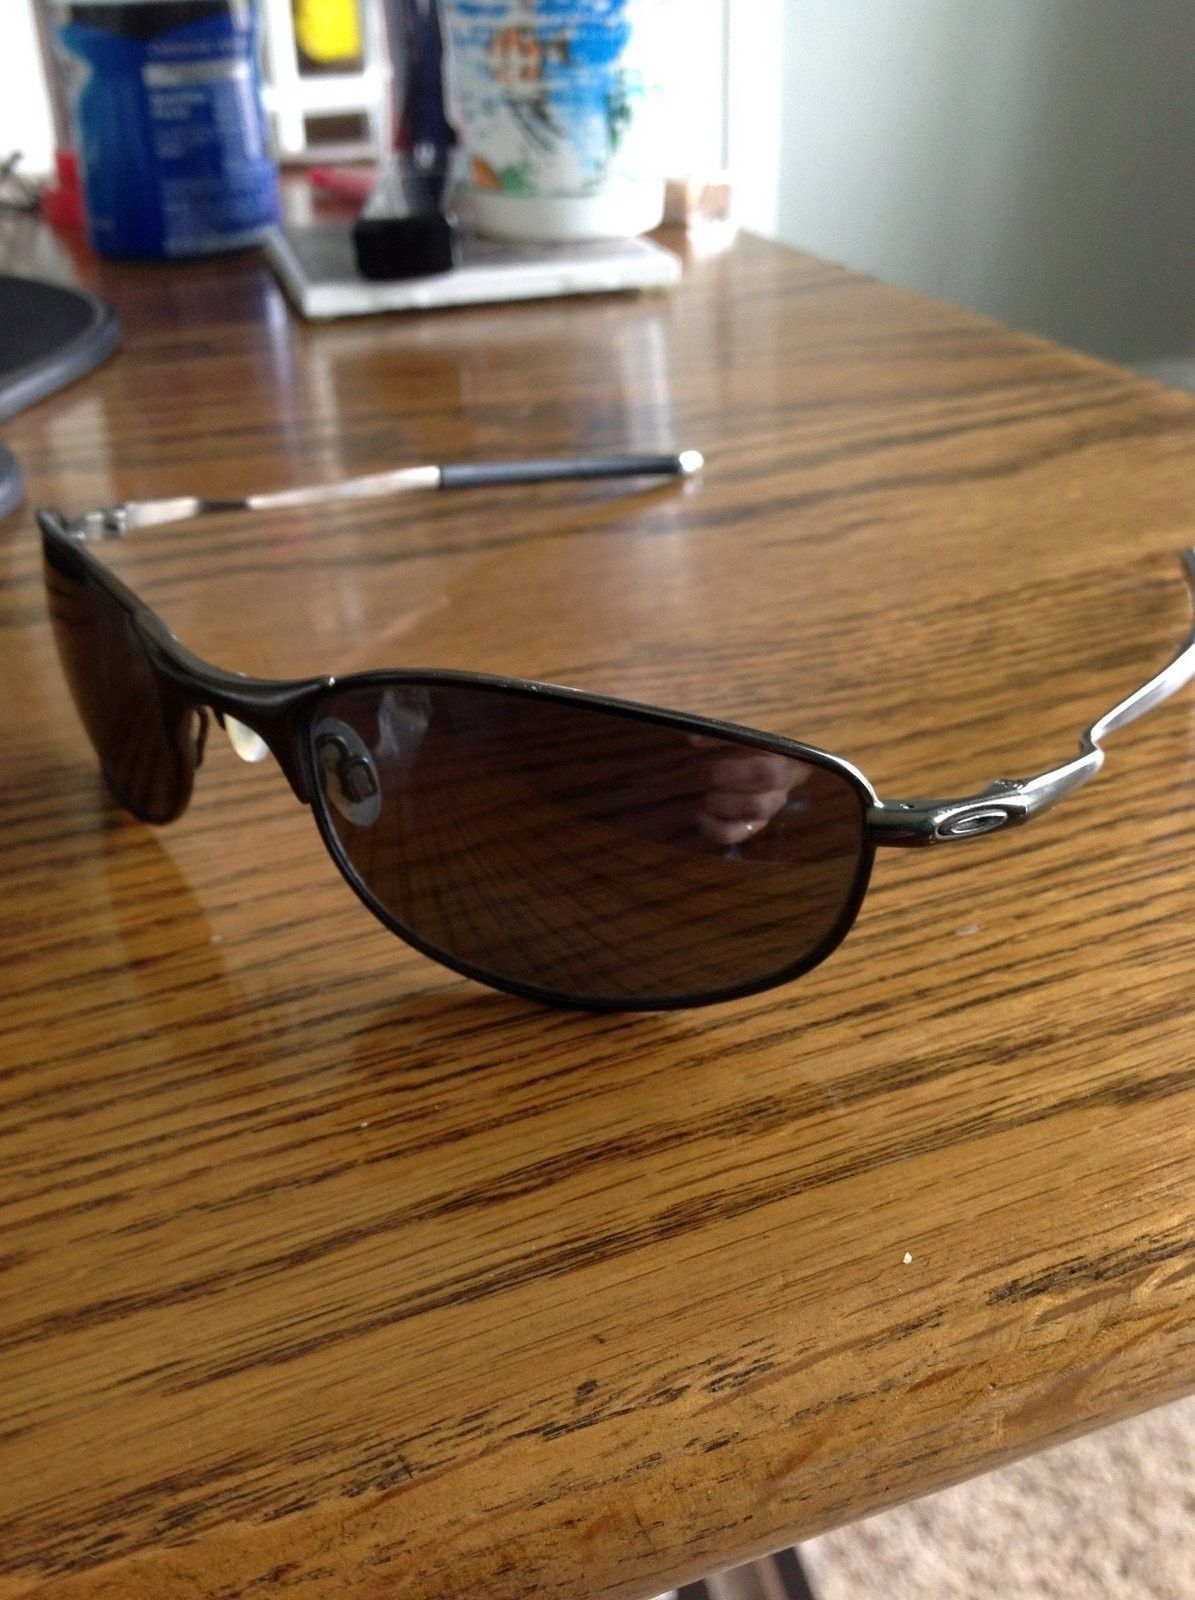 Need help identifying model of oakley sunglasses - image.jpg